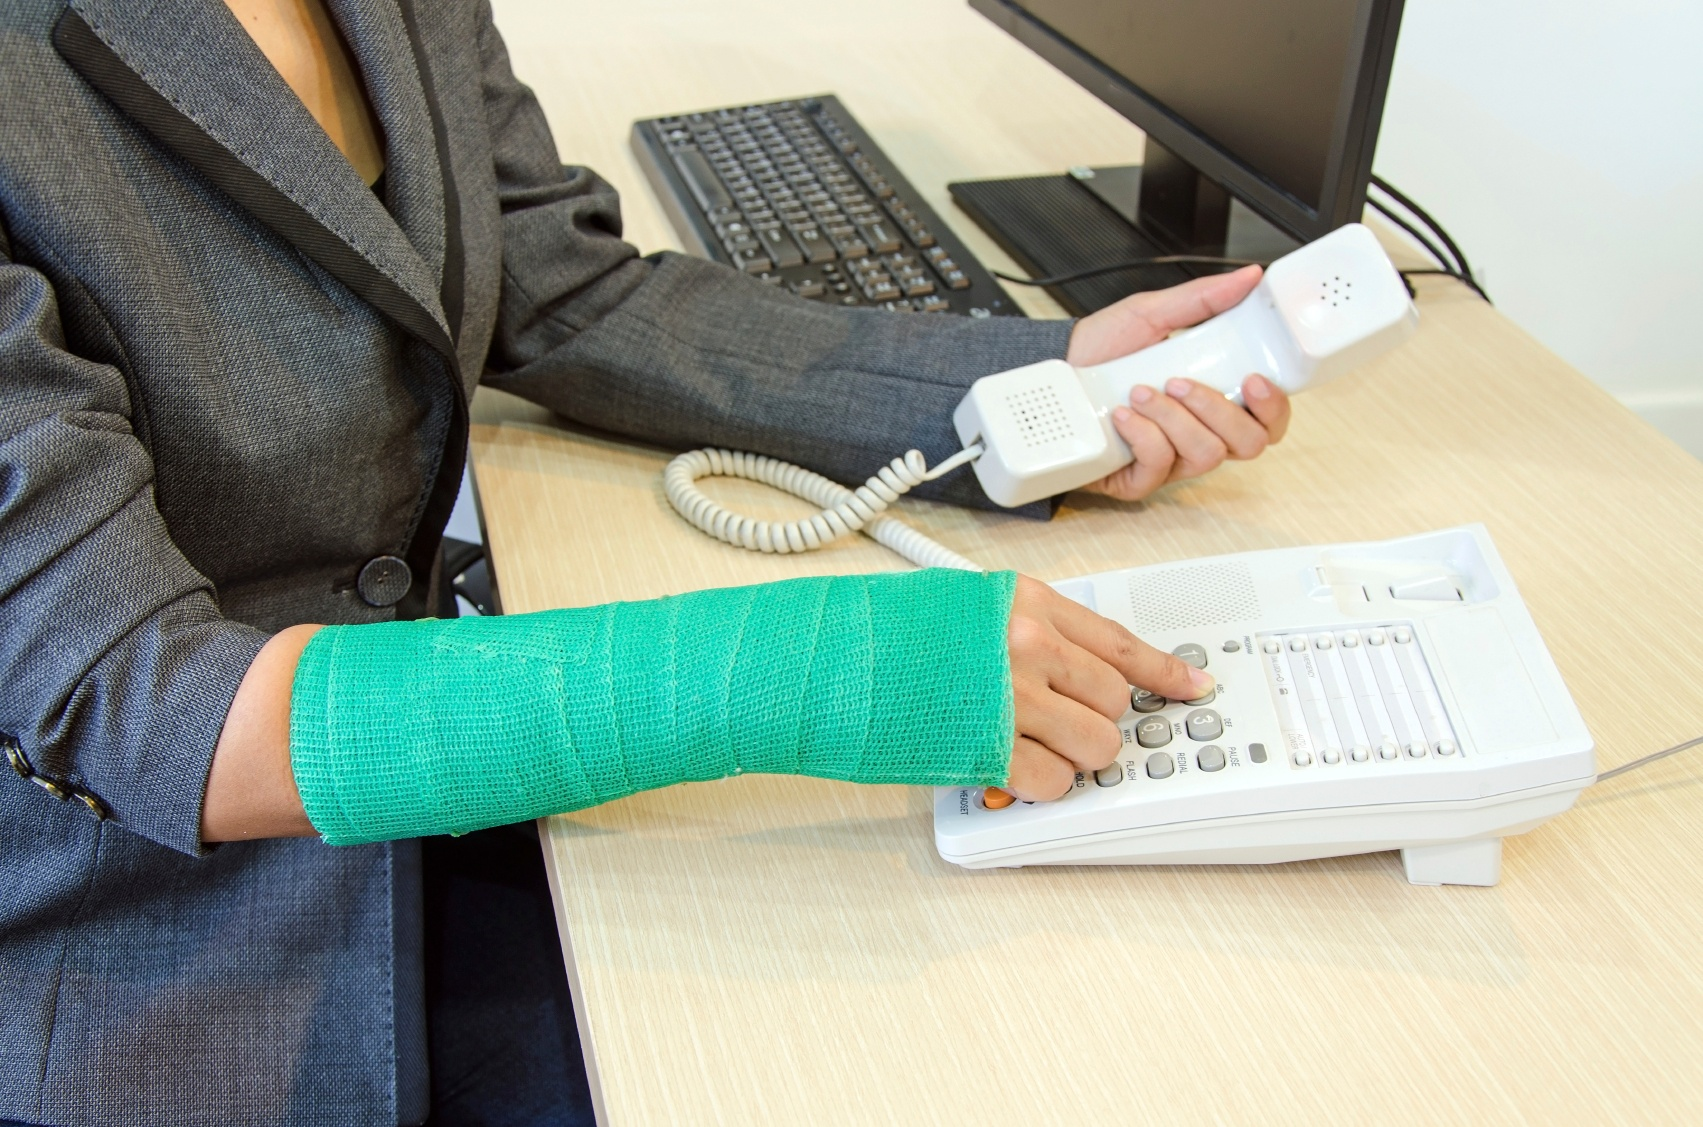 Does Workers' Compensation Cover Carpal Tunnel Syndrome?